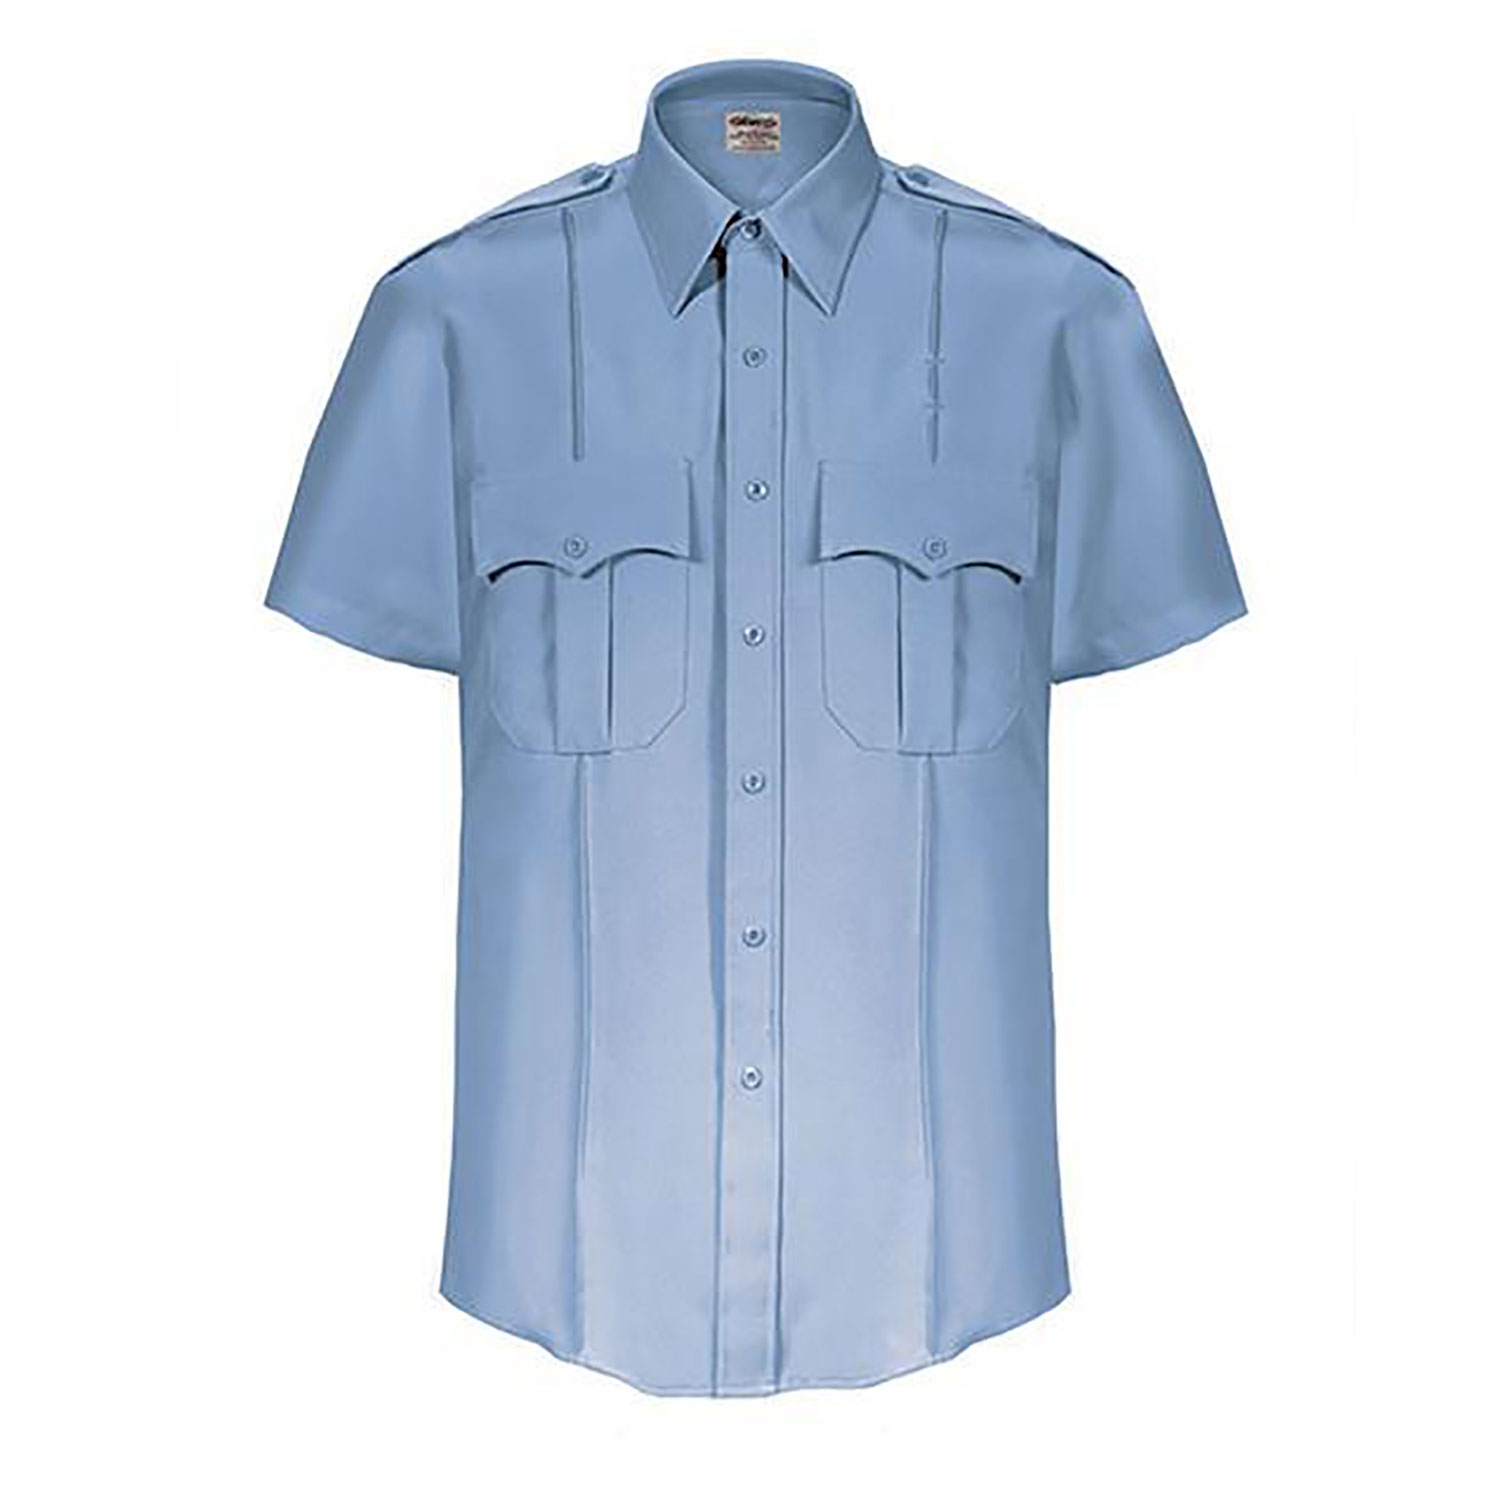 Elbeco Checkpoint Short Sleeve Shirt